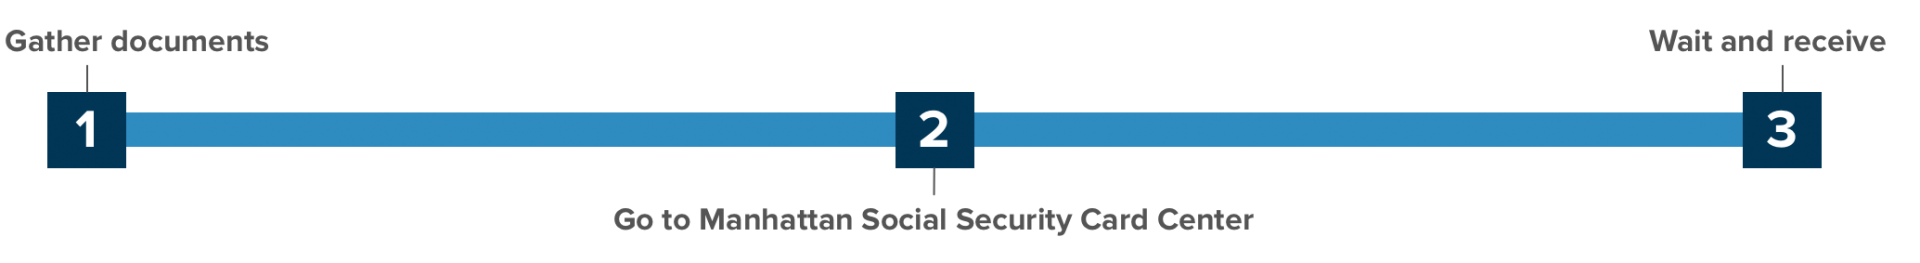 Social Security Card Timeline